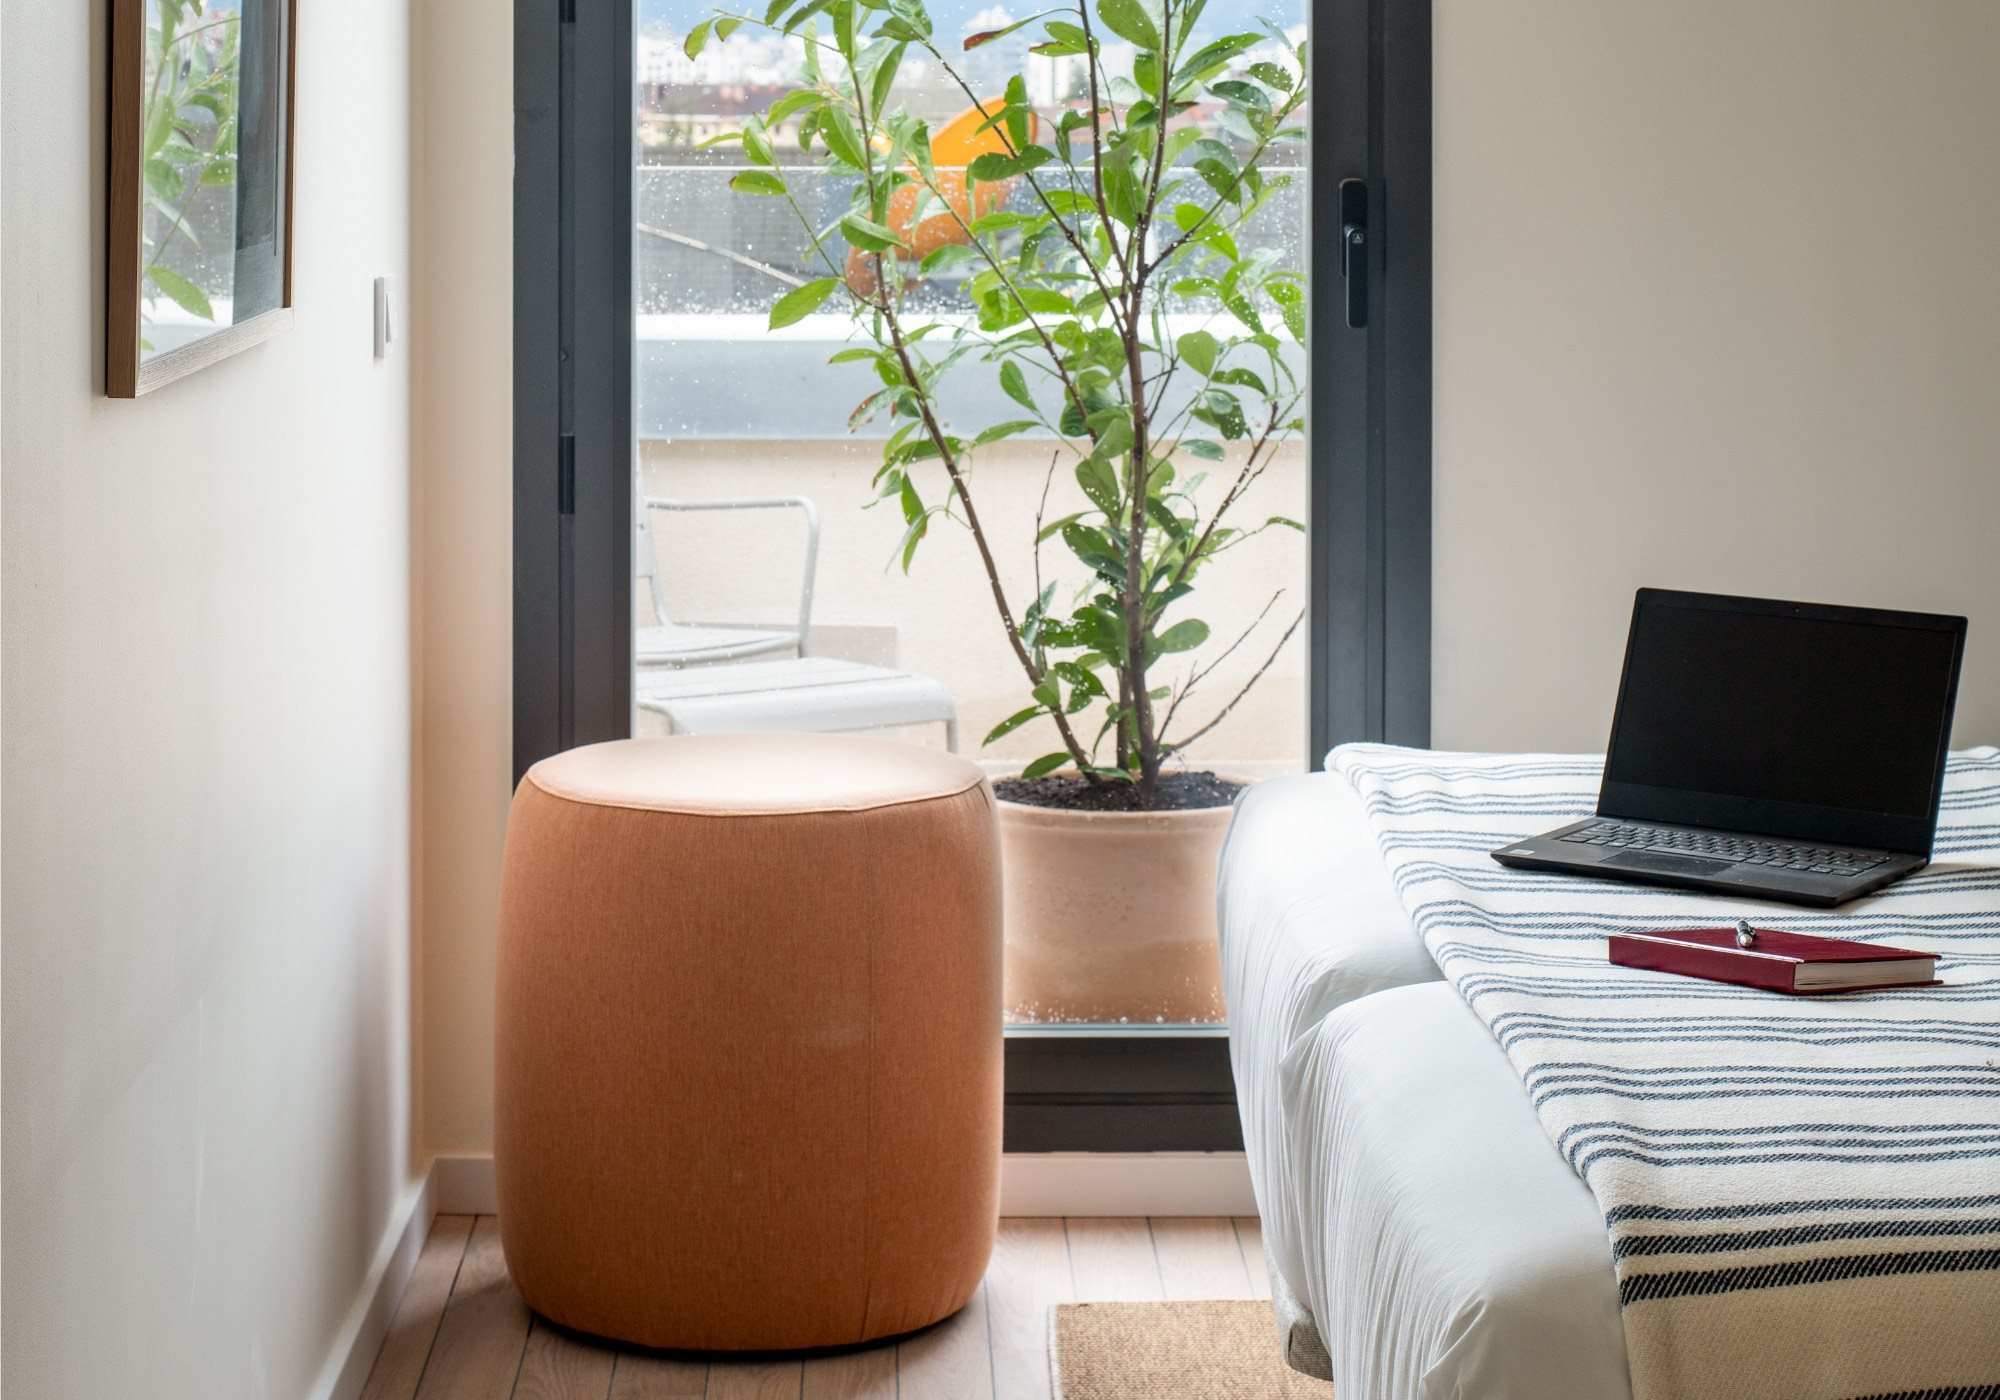 One bedroom penthouse in Vitoria city centre